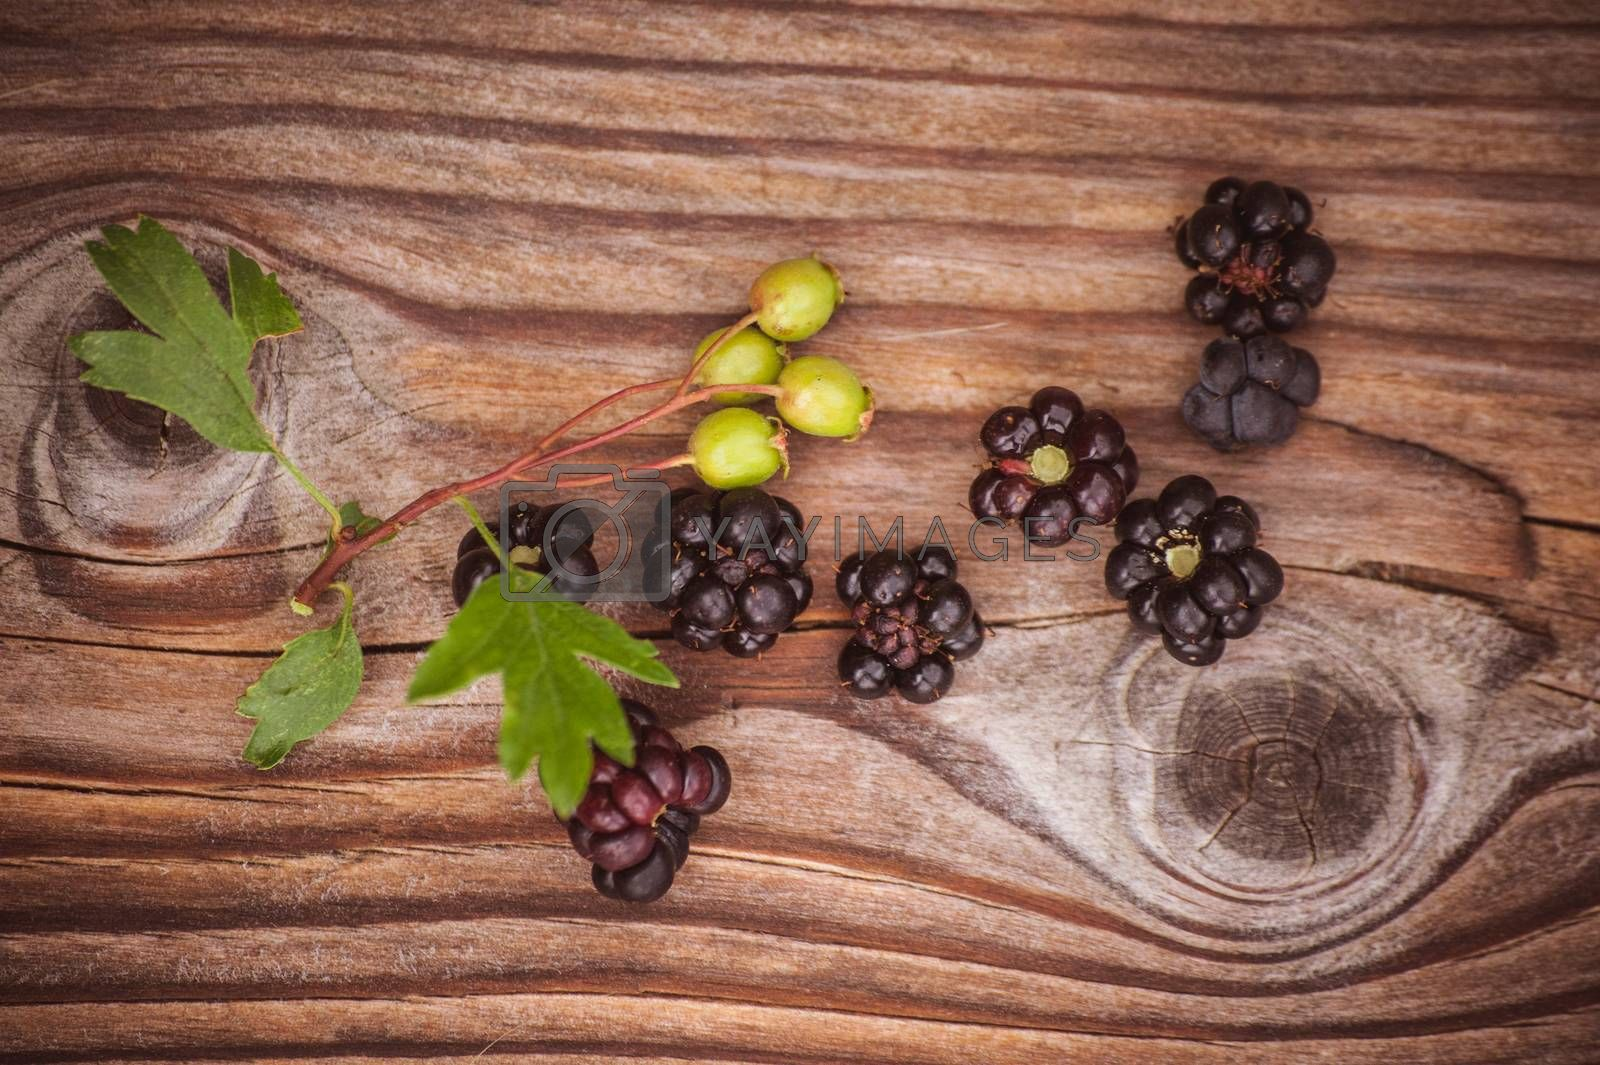 wild blackberry berries on wooden background with leafs